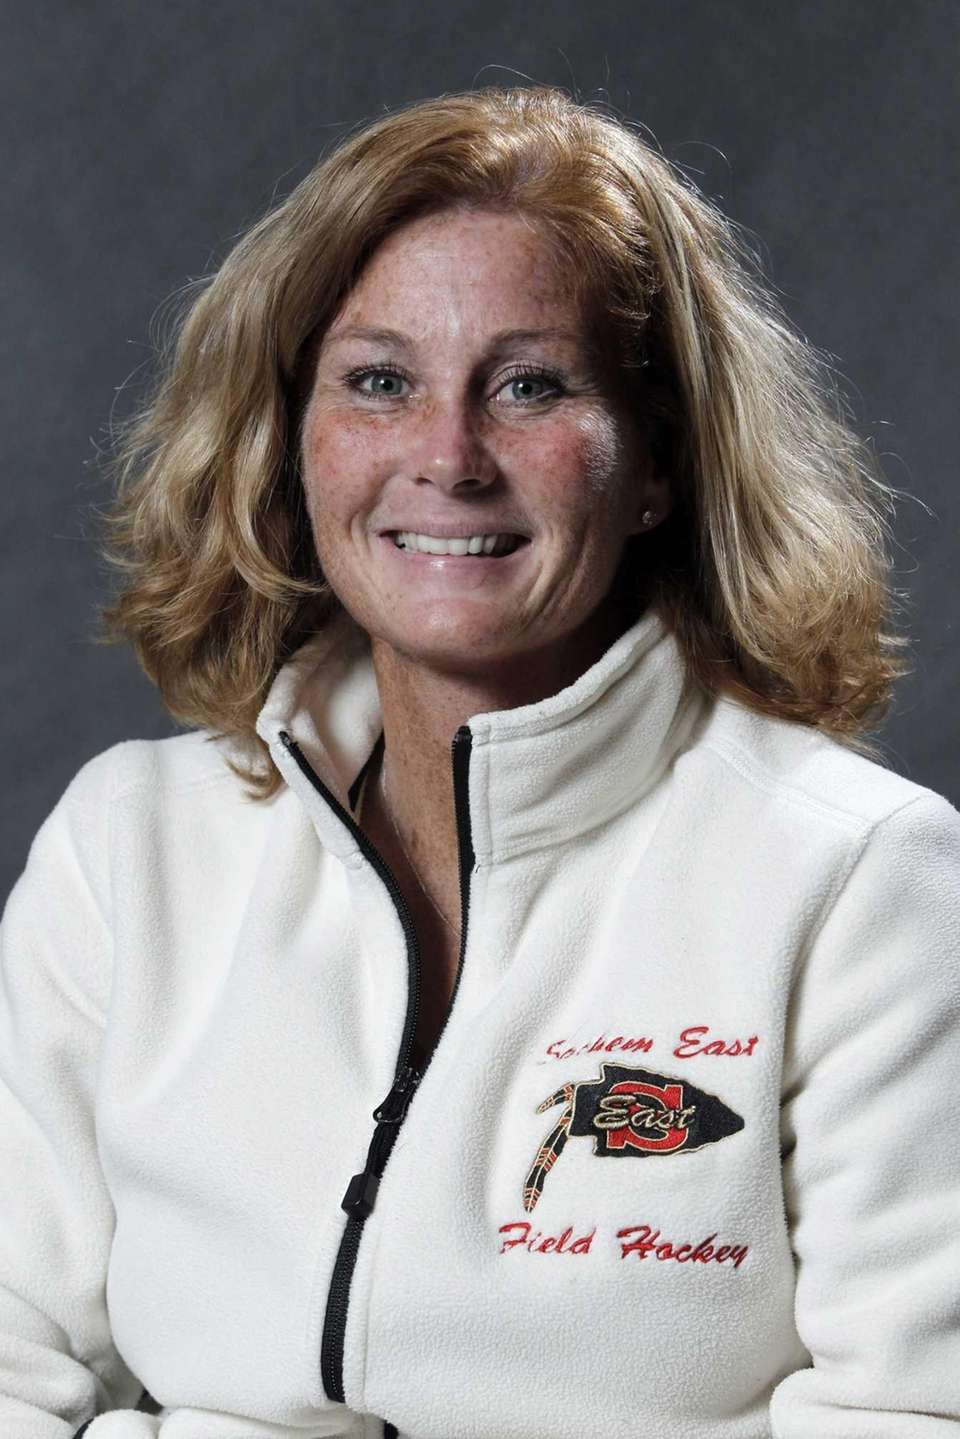 TINA MOON Sachem East Suffolk field hockey coach